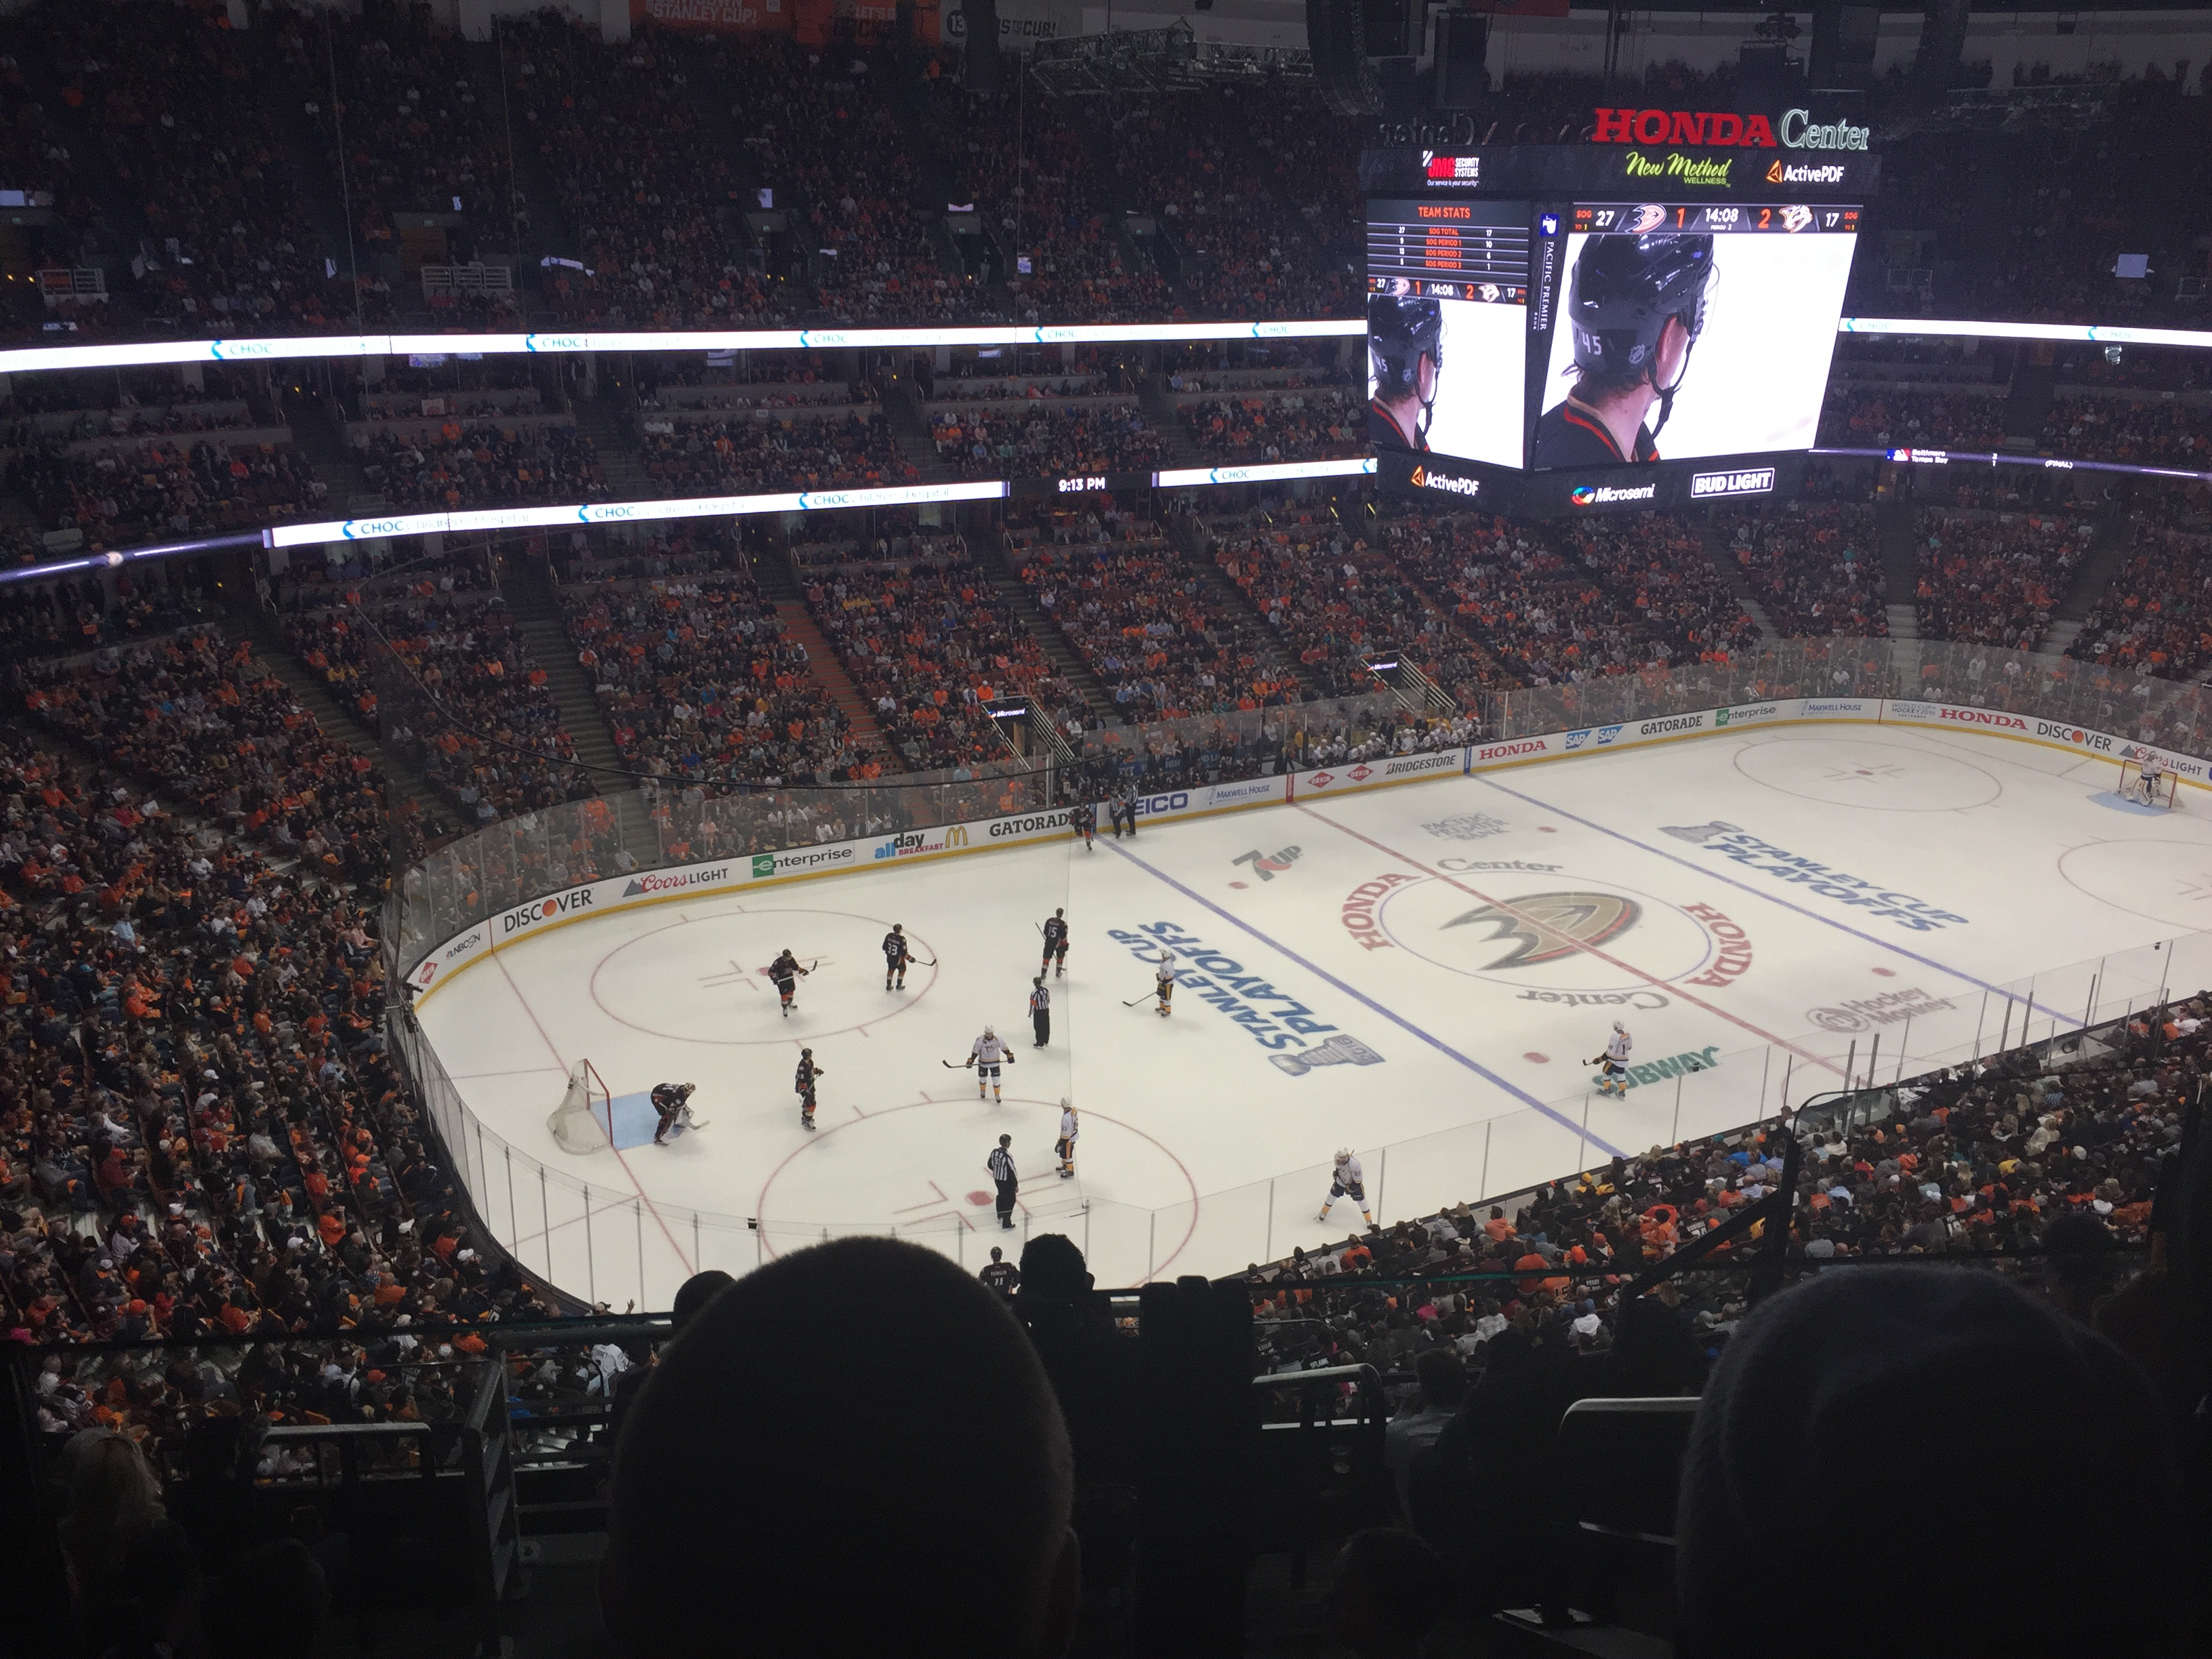 Superb The New Scoreboard At Honda Center As Seen From Section 438 During The 2016  Stanley Cup Play Offs On April 27, 2016